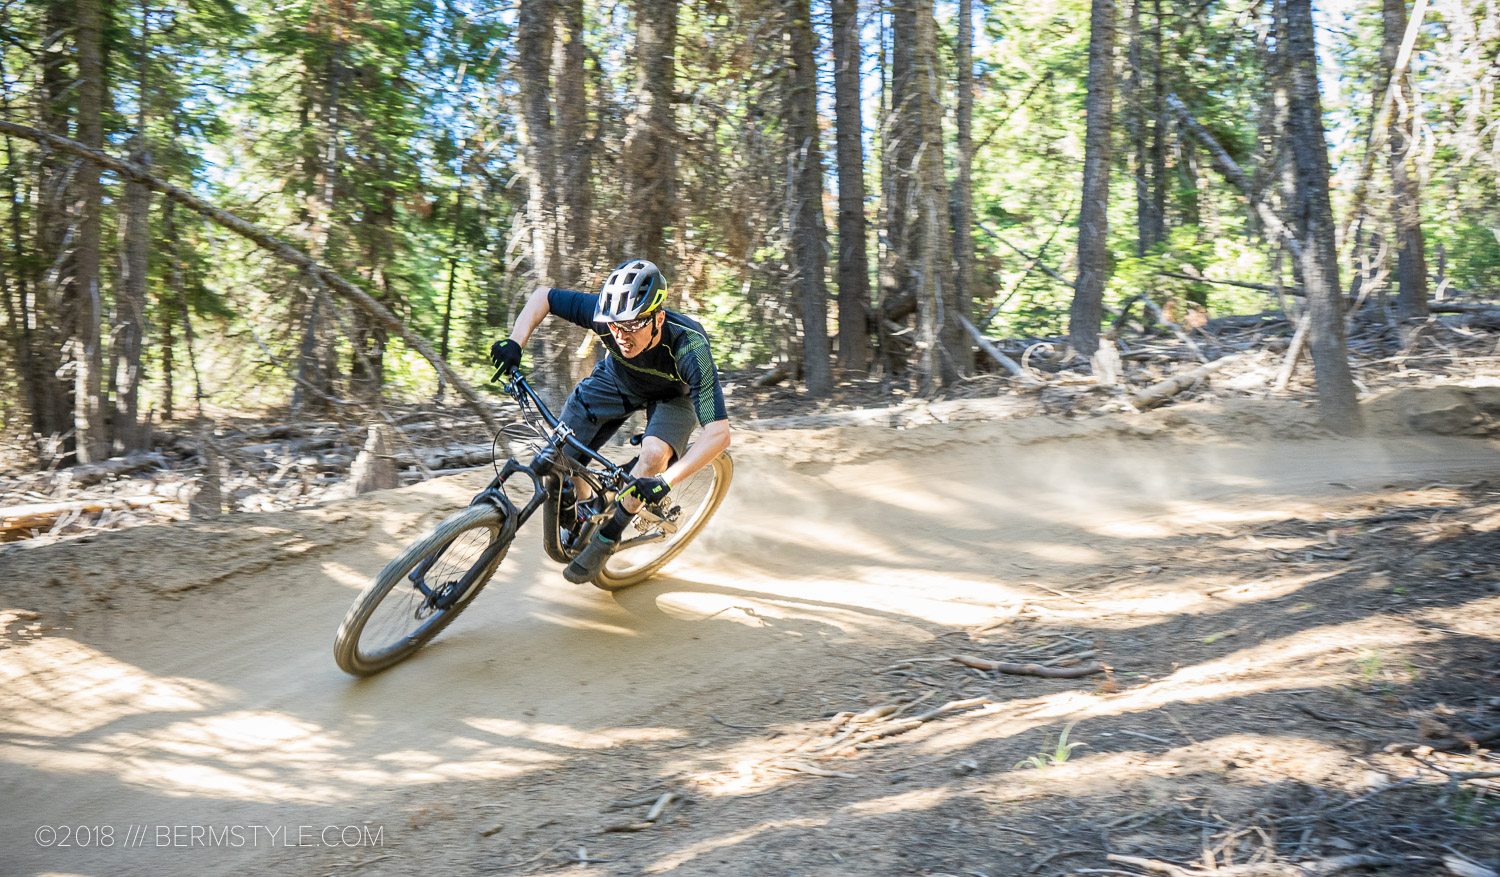 Railing a turn on the Tiddlywinks trail in Bend, Oregon